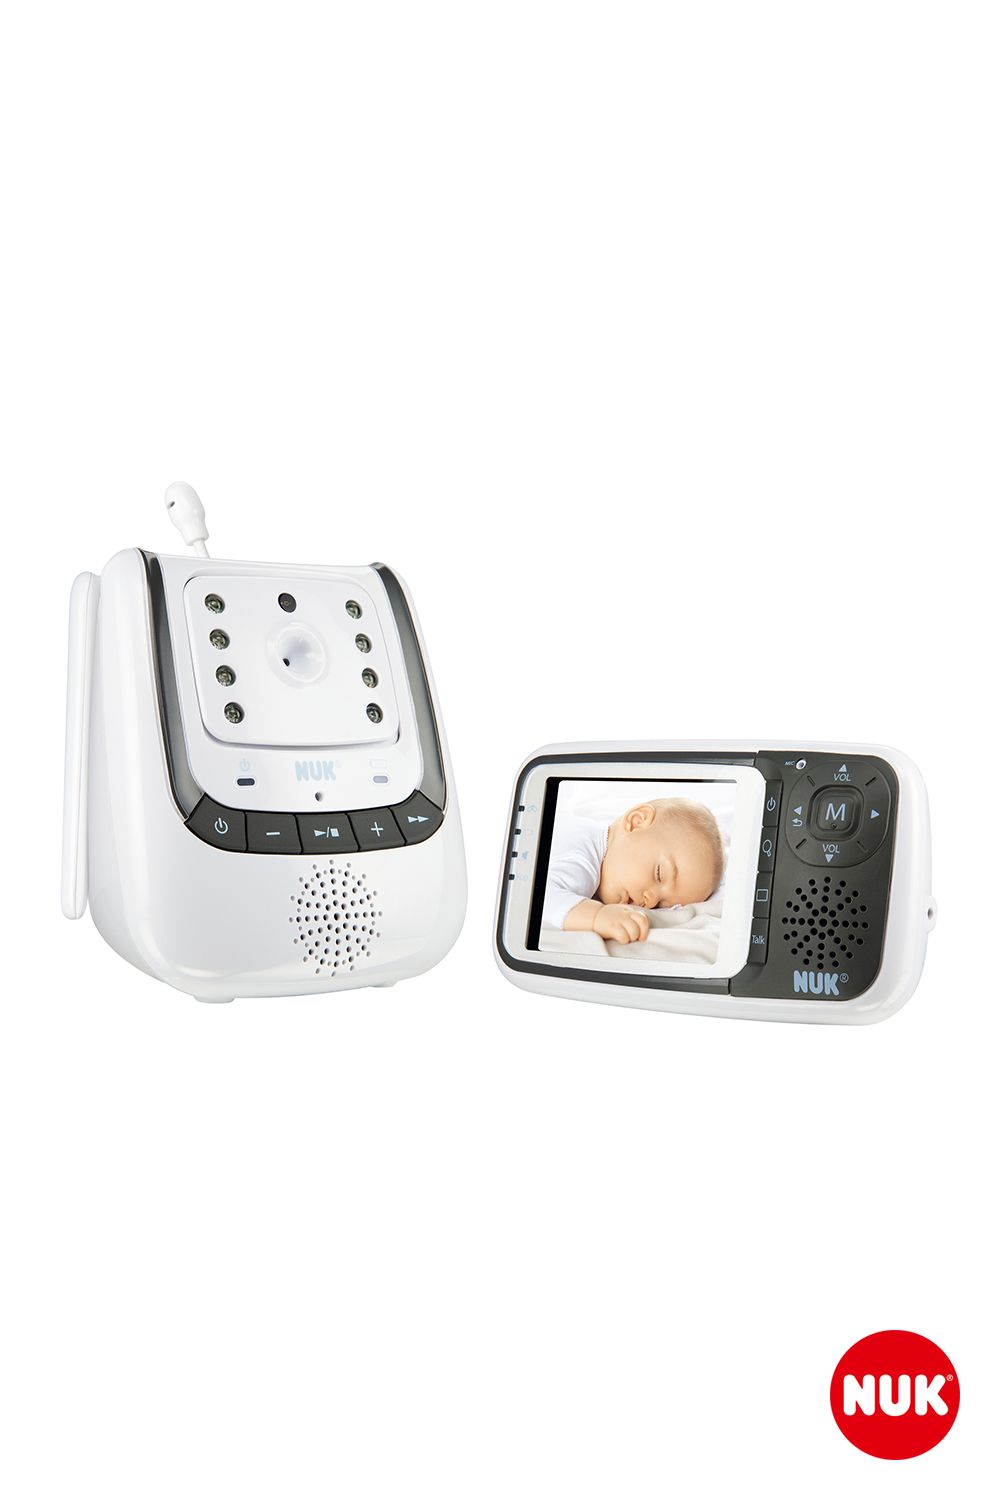 Pin By Artiola On Cute Baby In 2020 Nuk Electronic Products Video